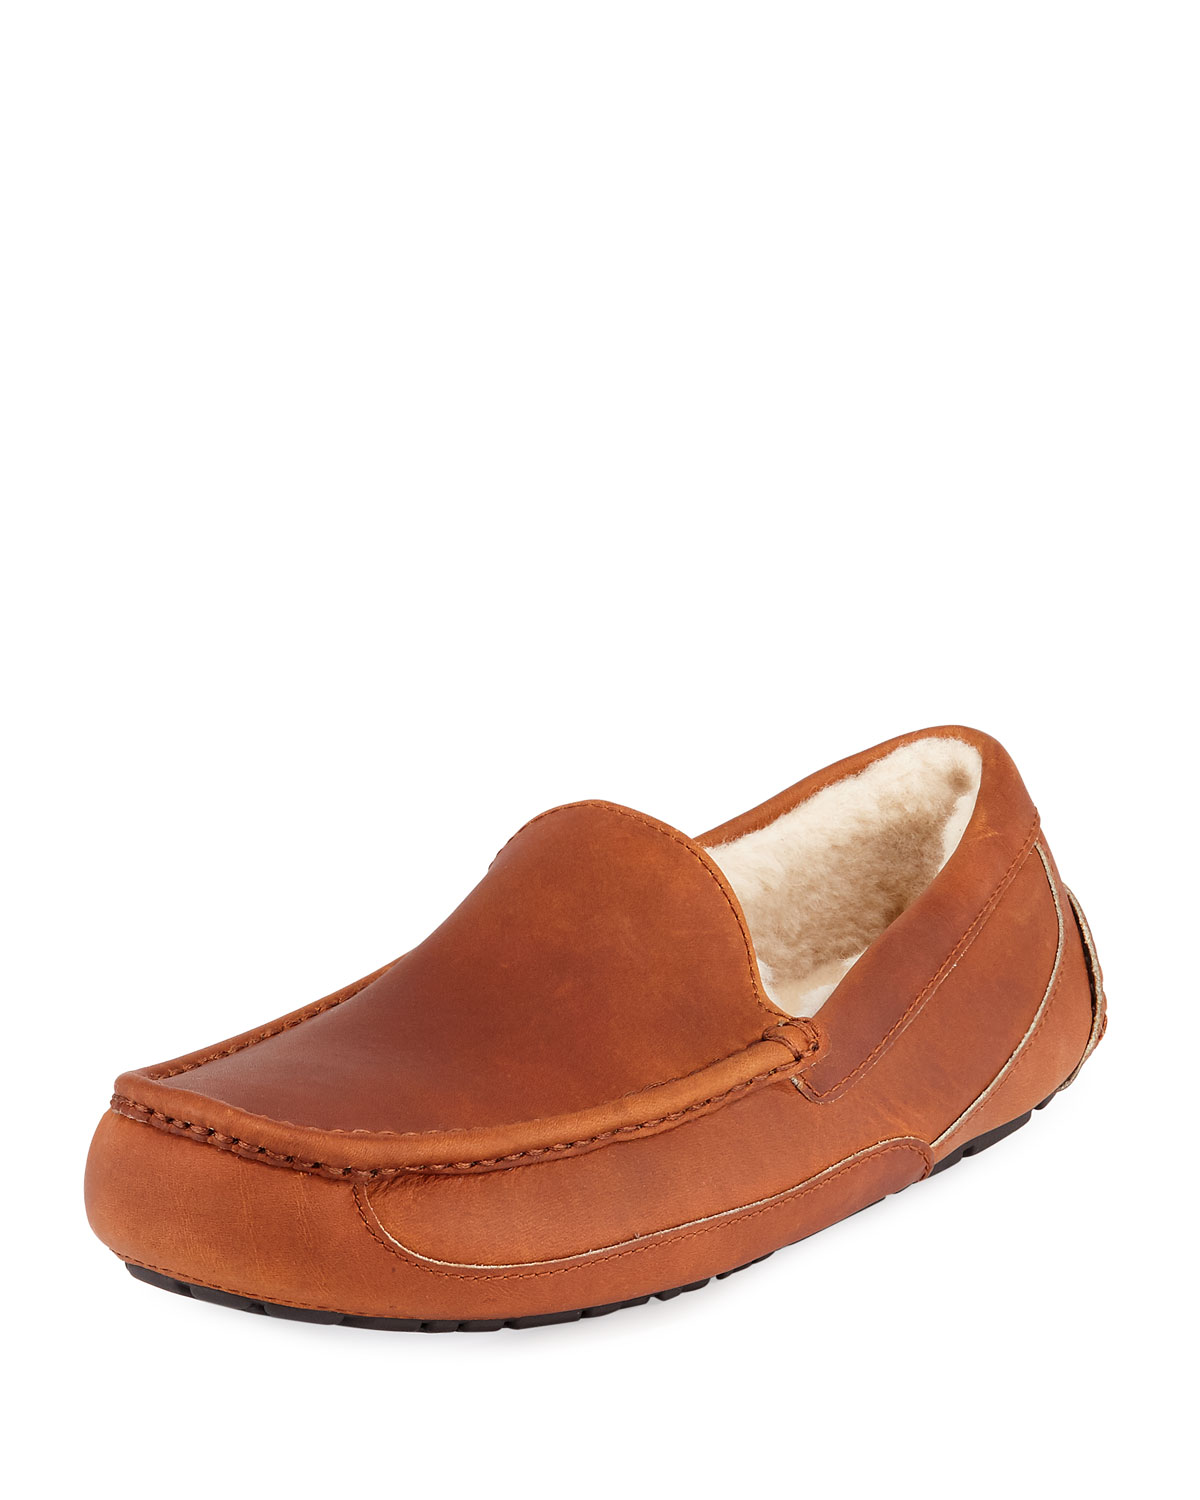 d69ce231276 Men's Ascot Pinnacle Horween Leather Slippers